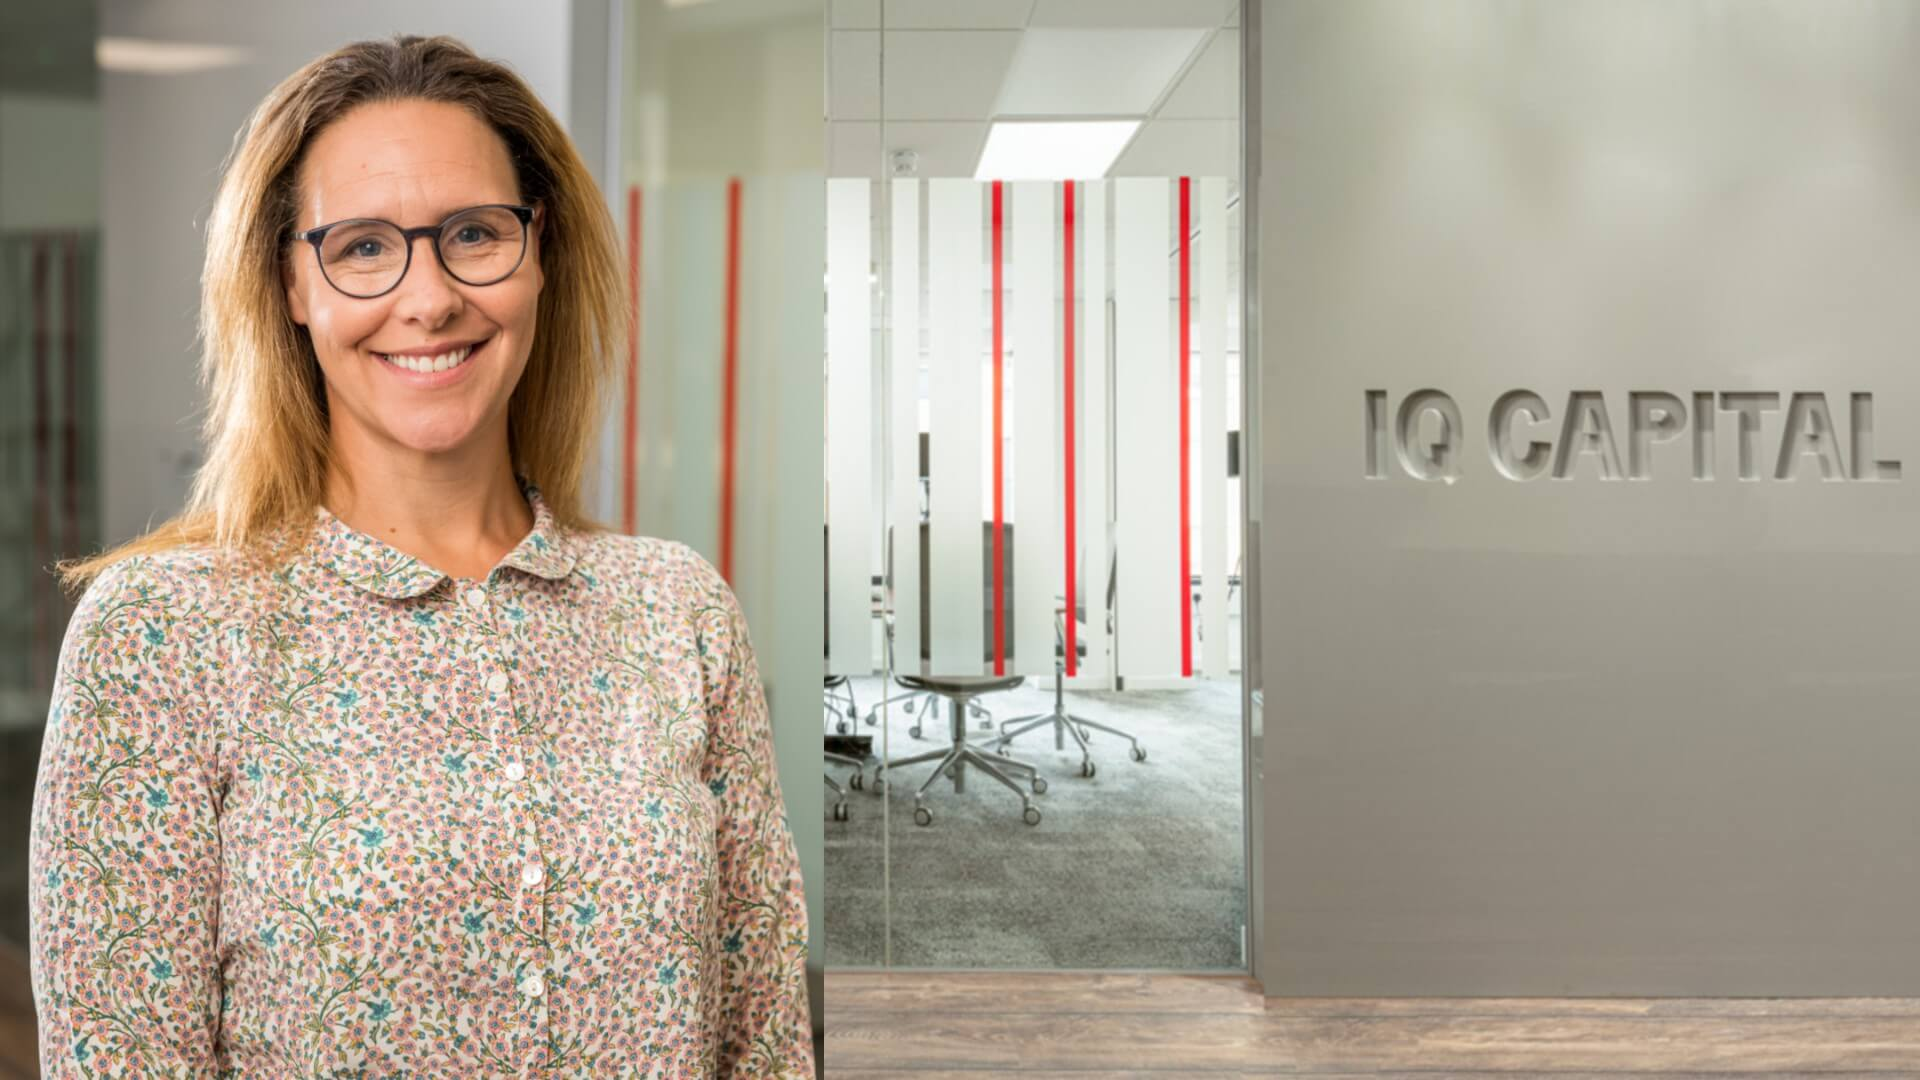 BVCA appoints Kerry Baldwin as new Vice-Chair